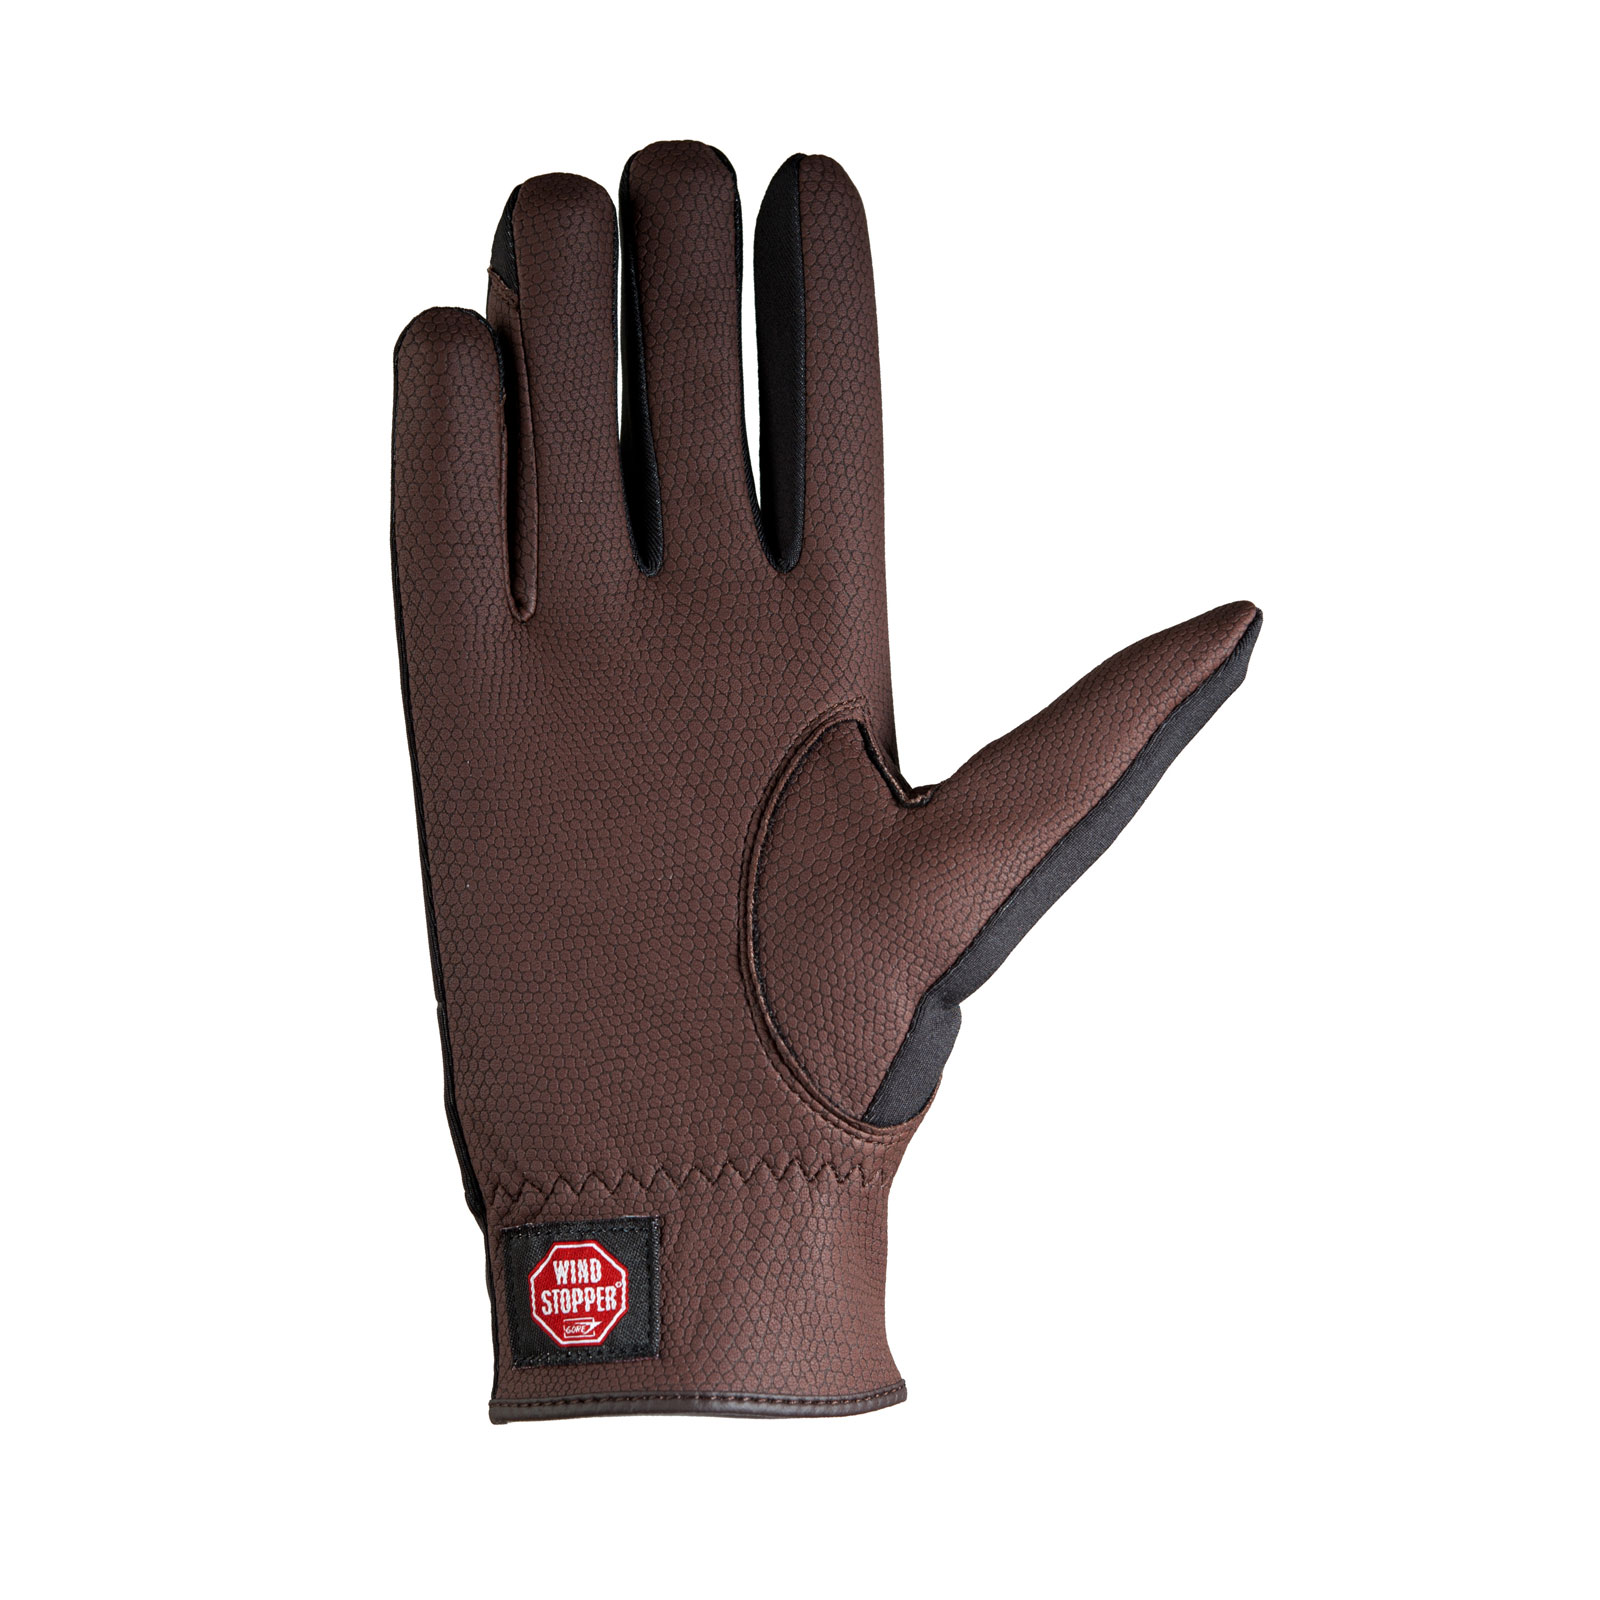 Roeckl Reit Function Winter Roeck-Grip Windstopper softshellhandskar